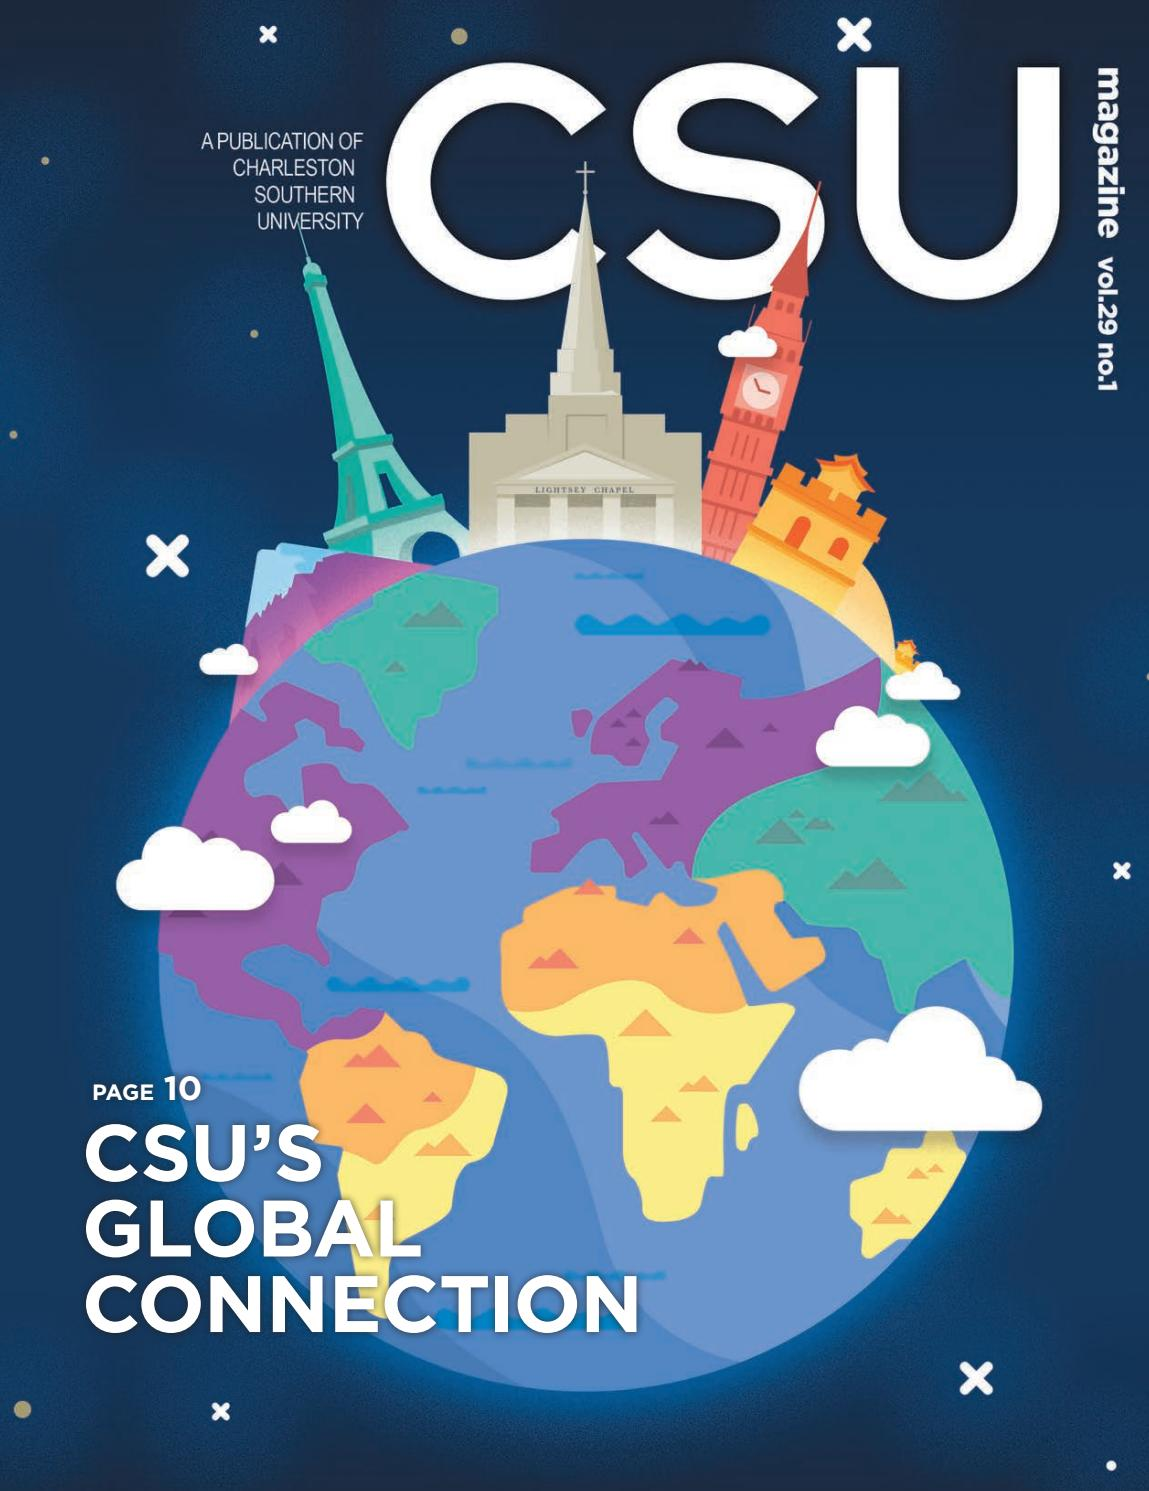 cdaeb188 CSU magazine vol 29 no 1 SPRING 2019 by Bob Durand Design - issuu